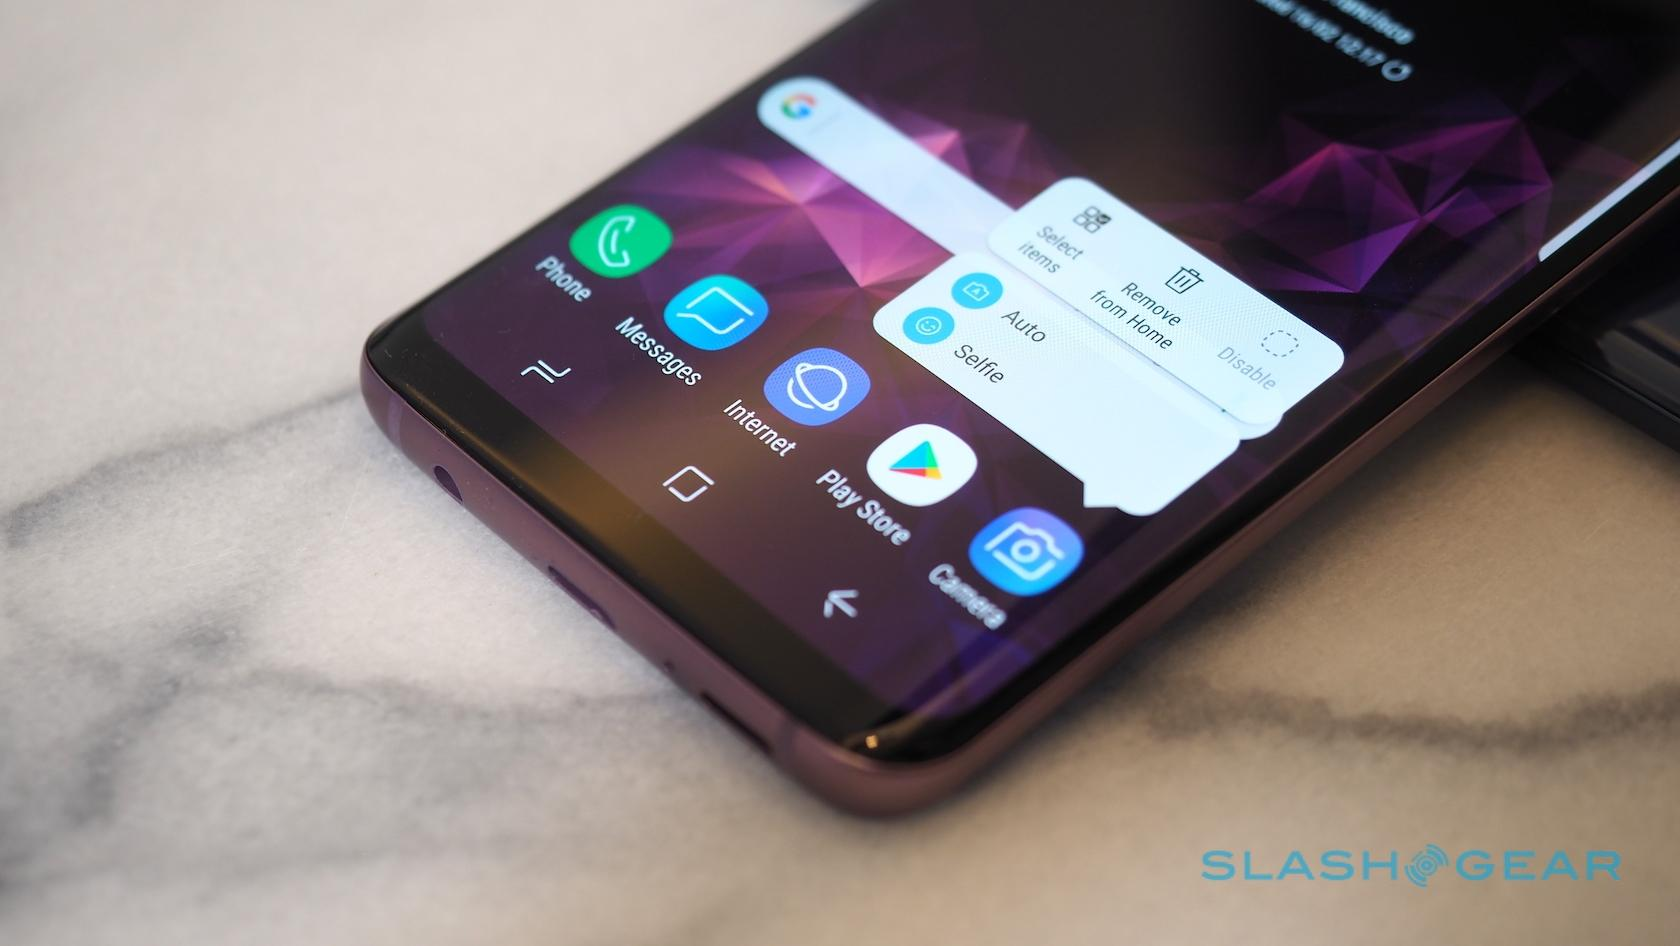 If Galaxy S9 Active looks like this, it'll be a YES from me - SlashGear